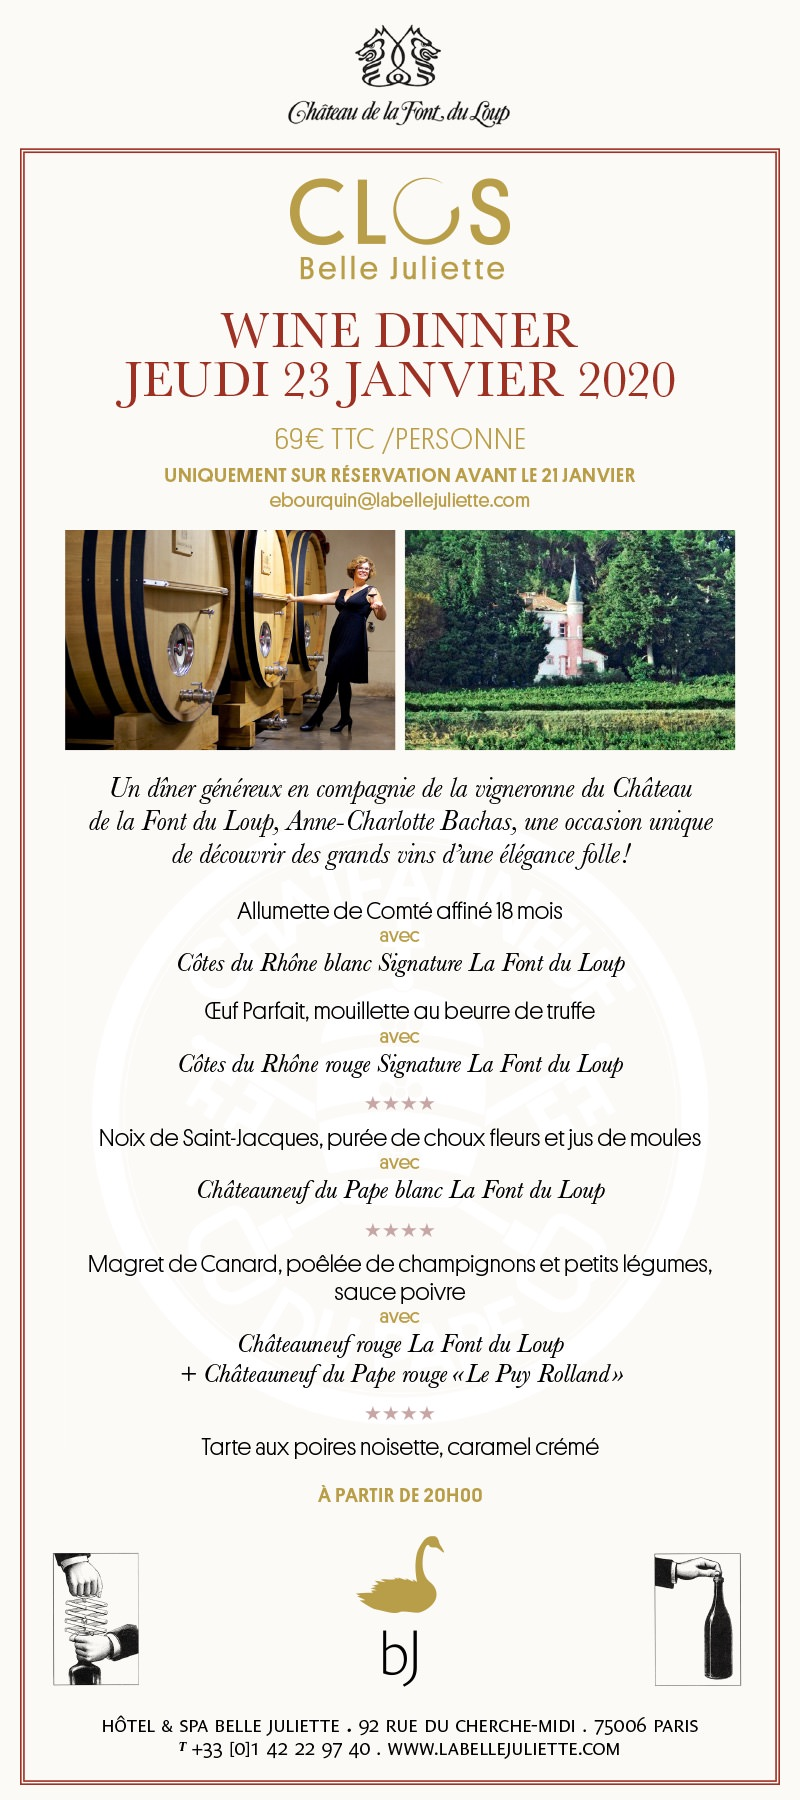 Wine Dinner à l'Hôtel & Spa Le Belle Juliette le 23 janvier 2020